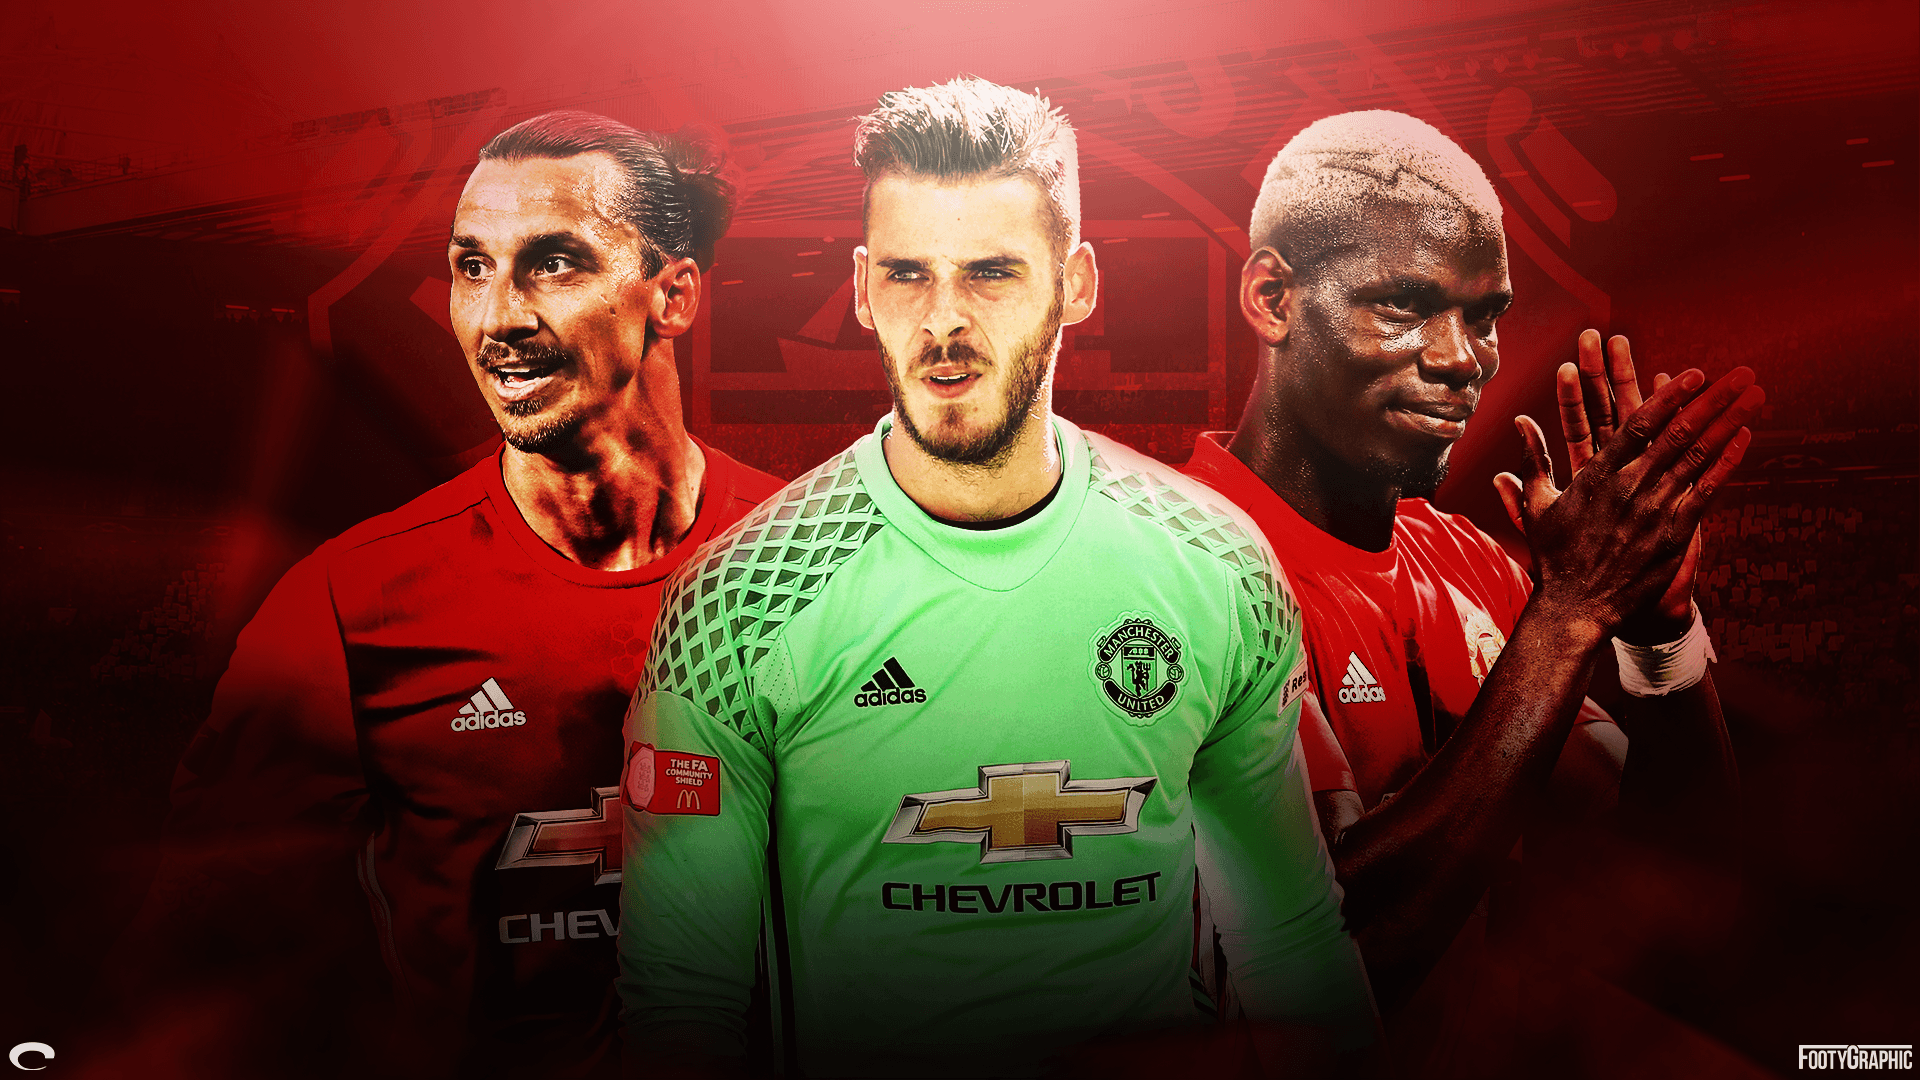 Manchester United wallpaper - FootyGraphic